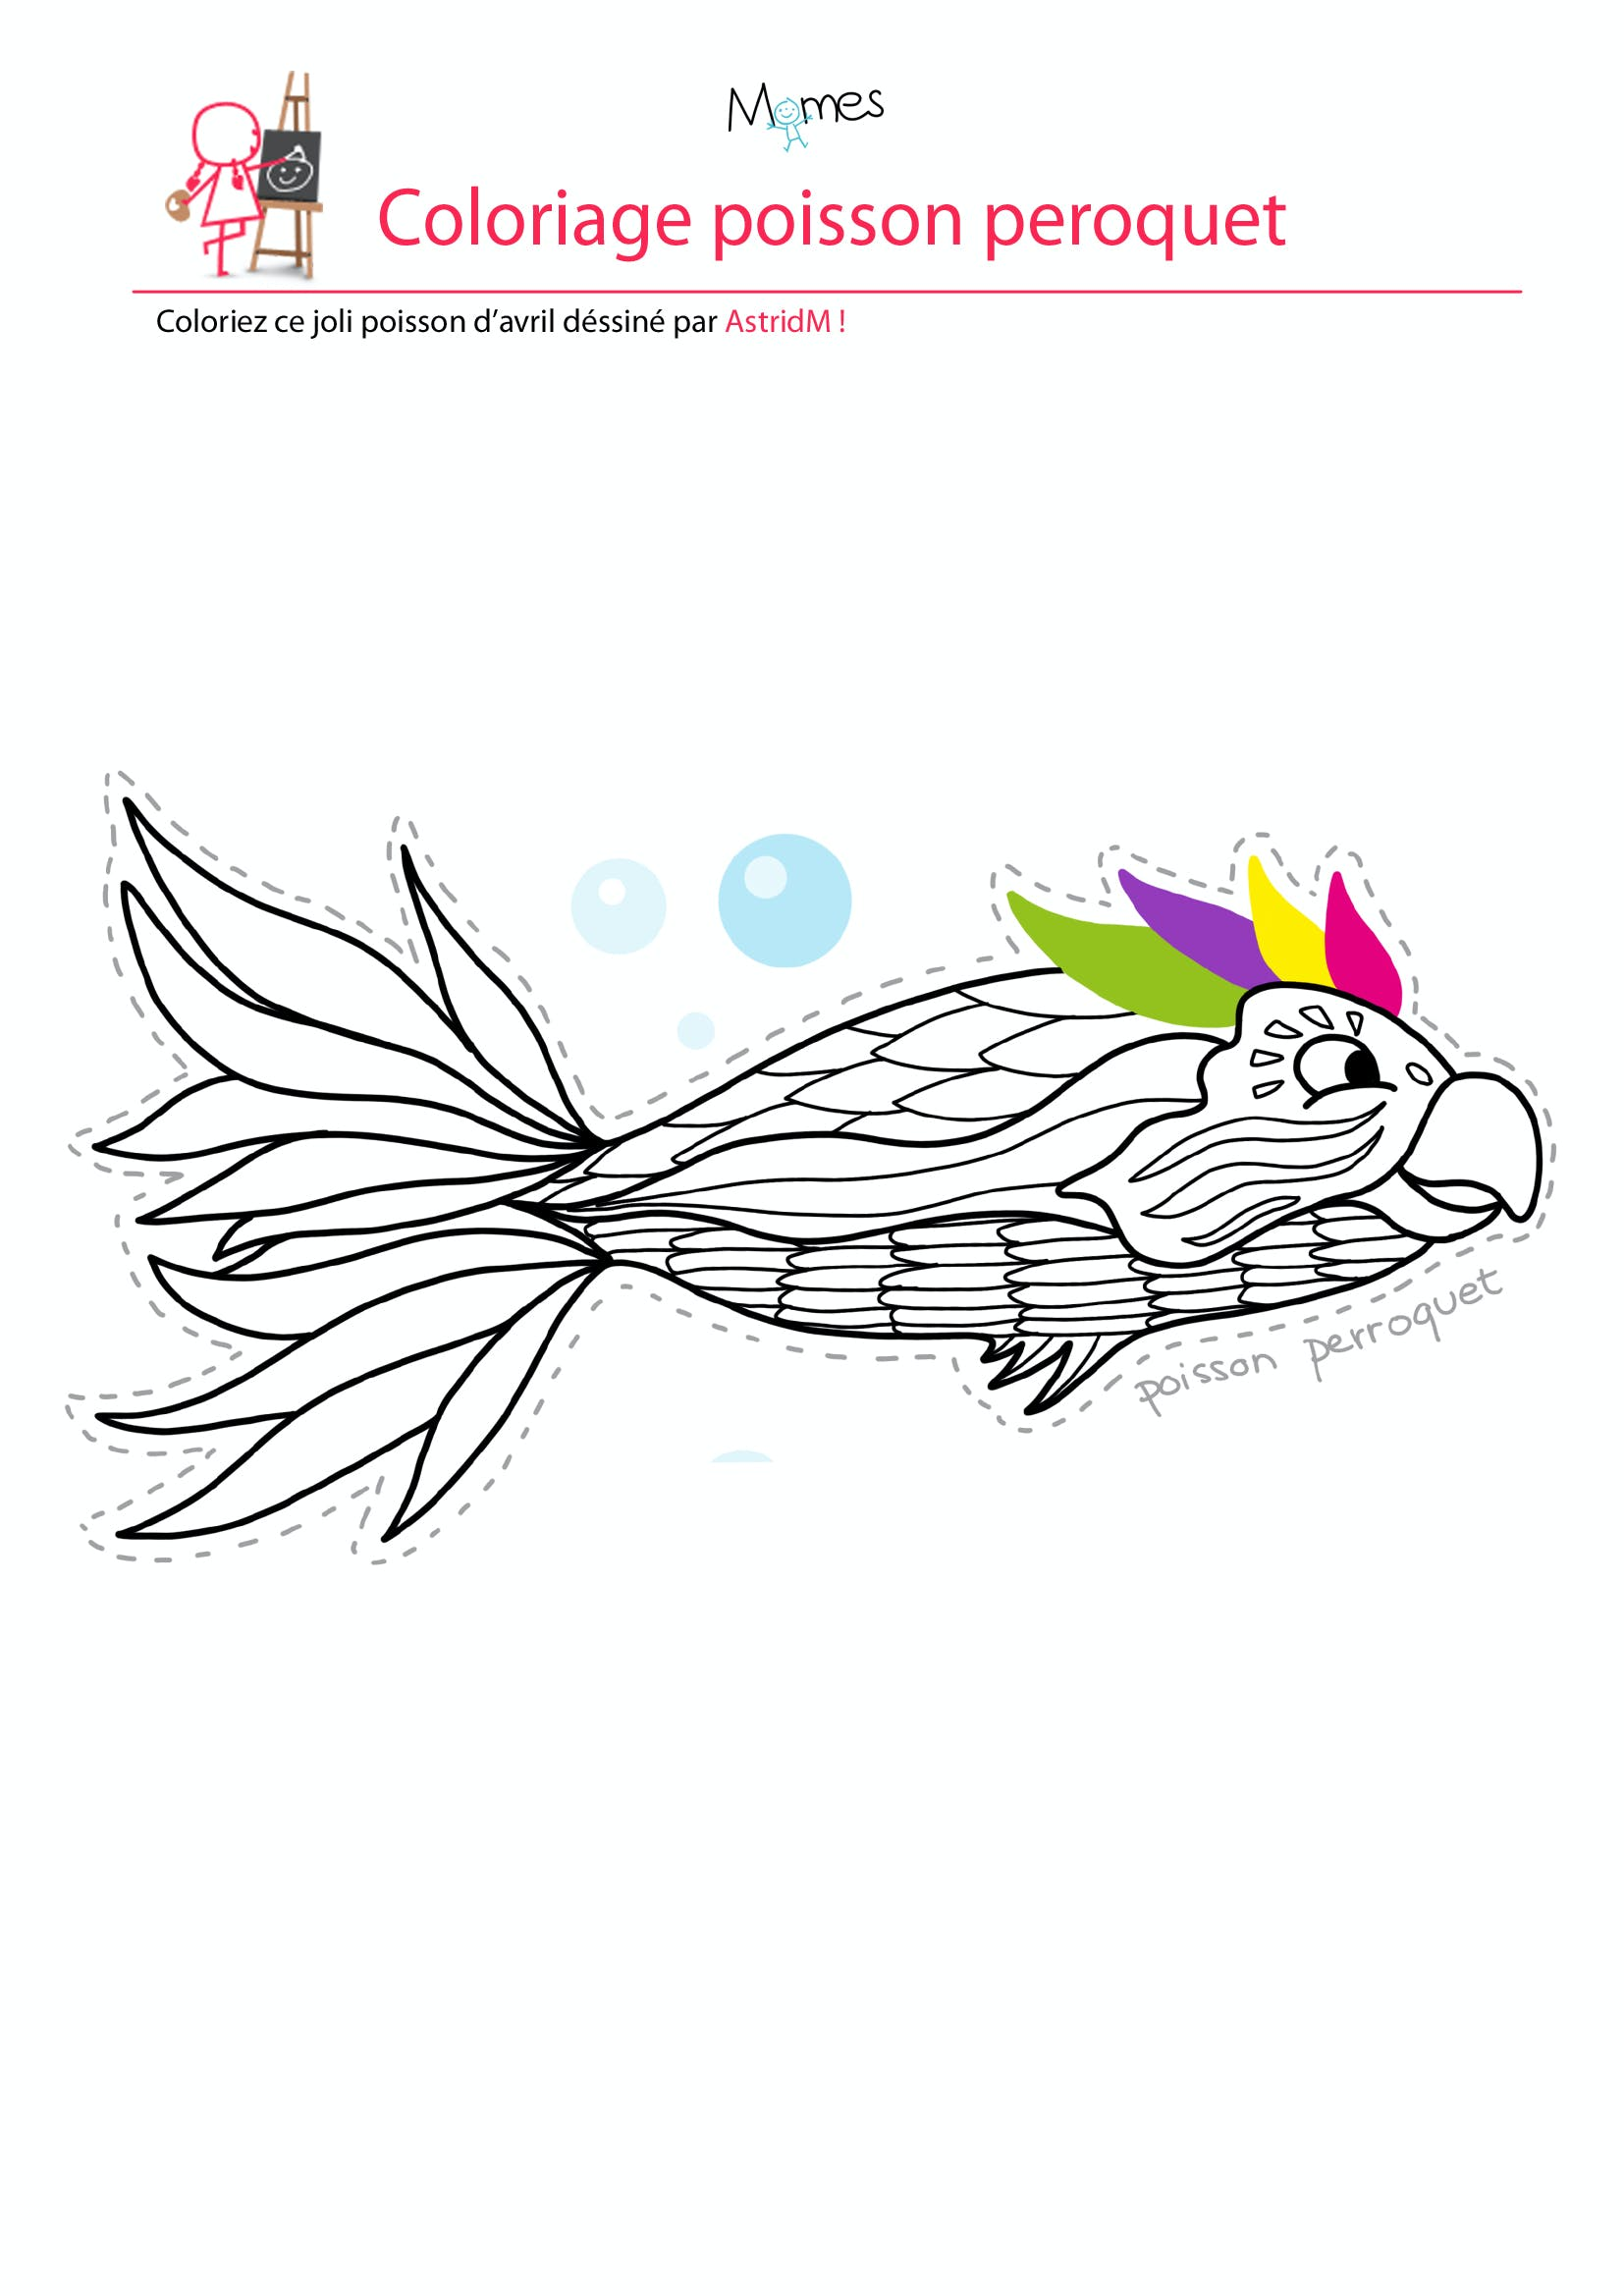 Coloriage poisson d 39 avril le poisson perroquet - Dessin de poisson d avril ...